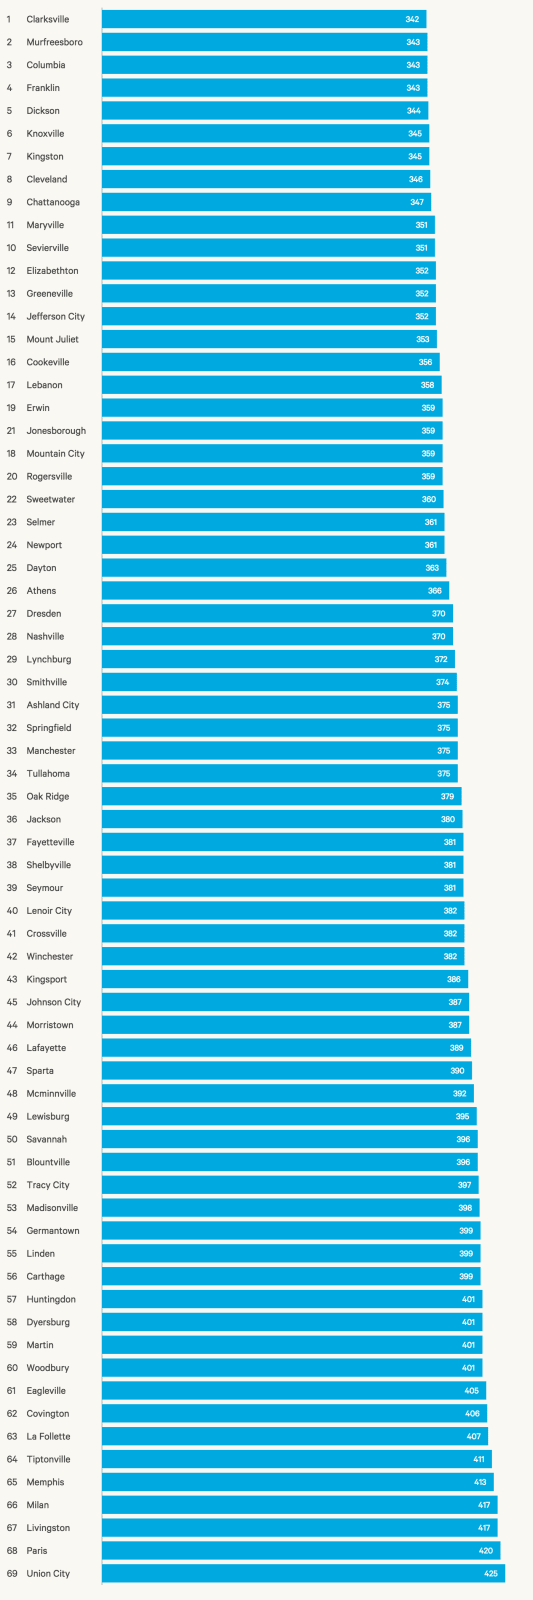 Tennessee cities by rank